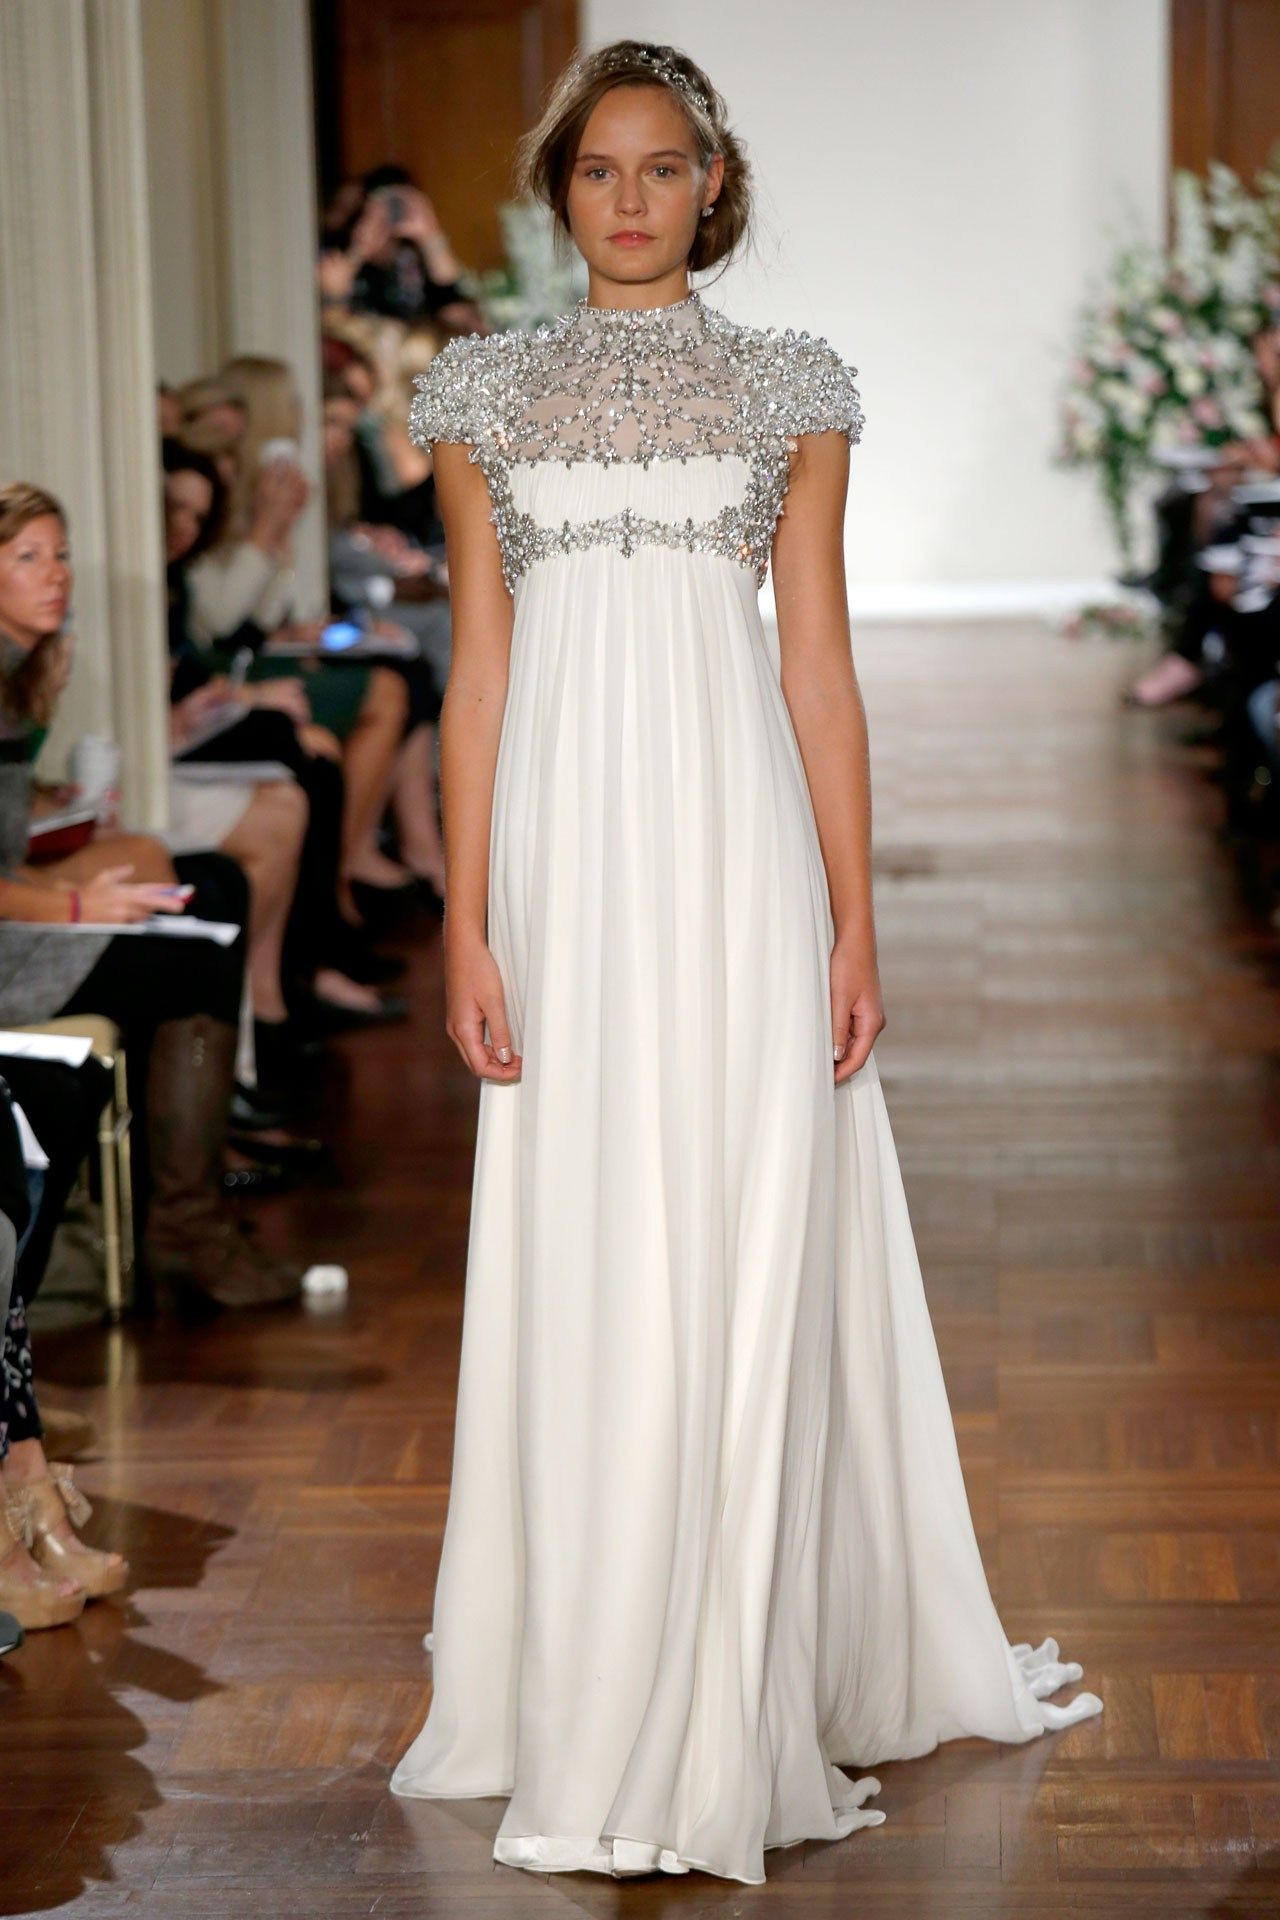 Wedding dresses the ultimate gallery bridesmagazine wedding dresses the ultimate gallery bridesmagazine ombrellifo Gallery